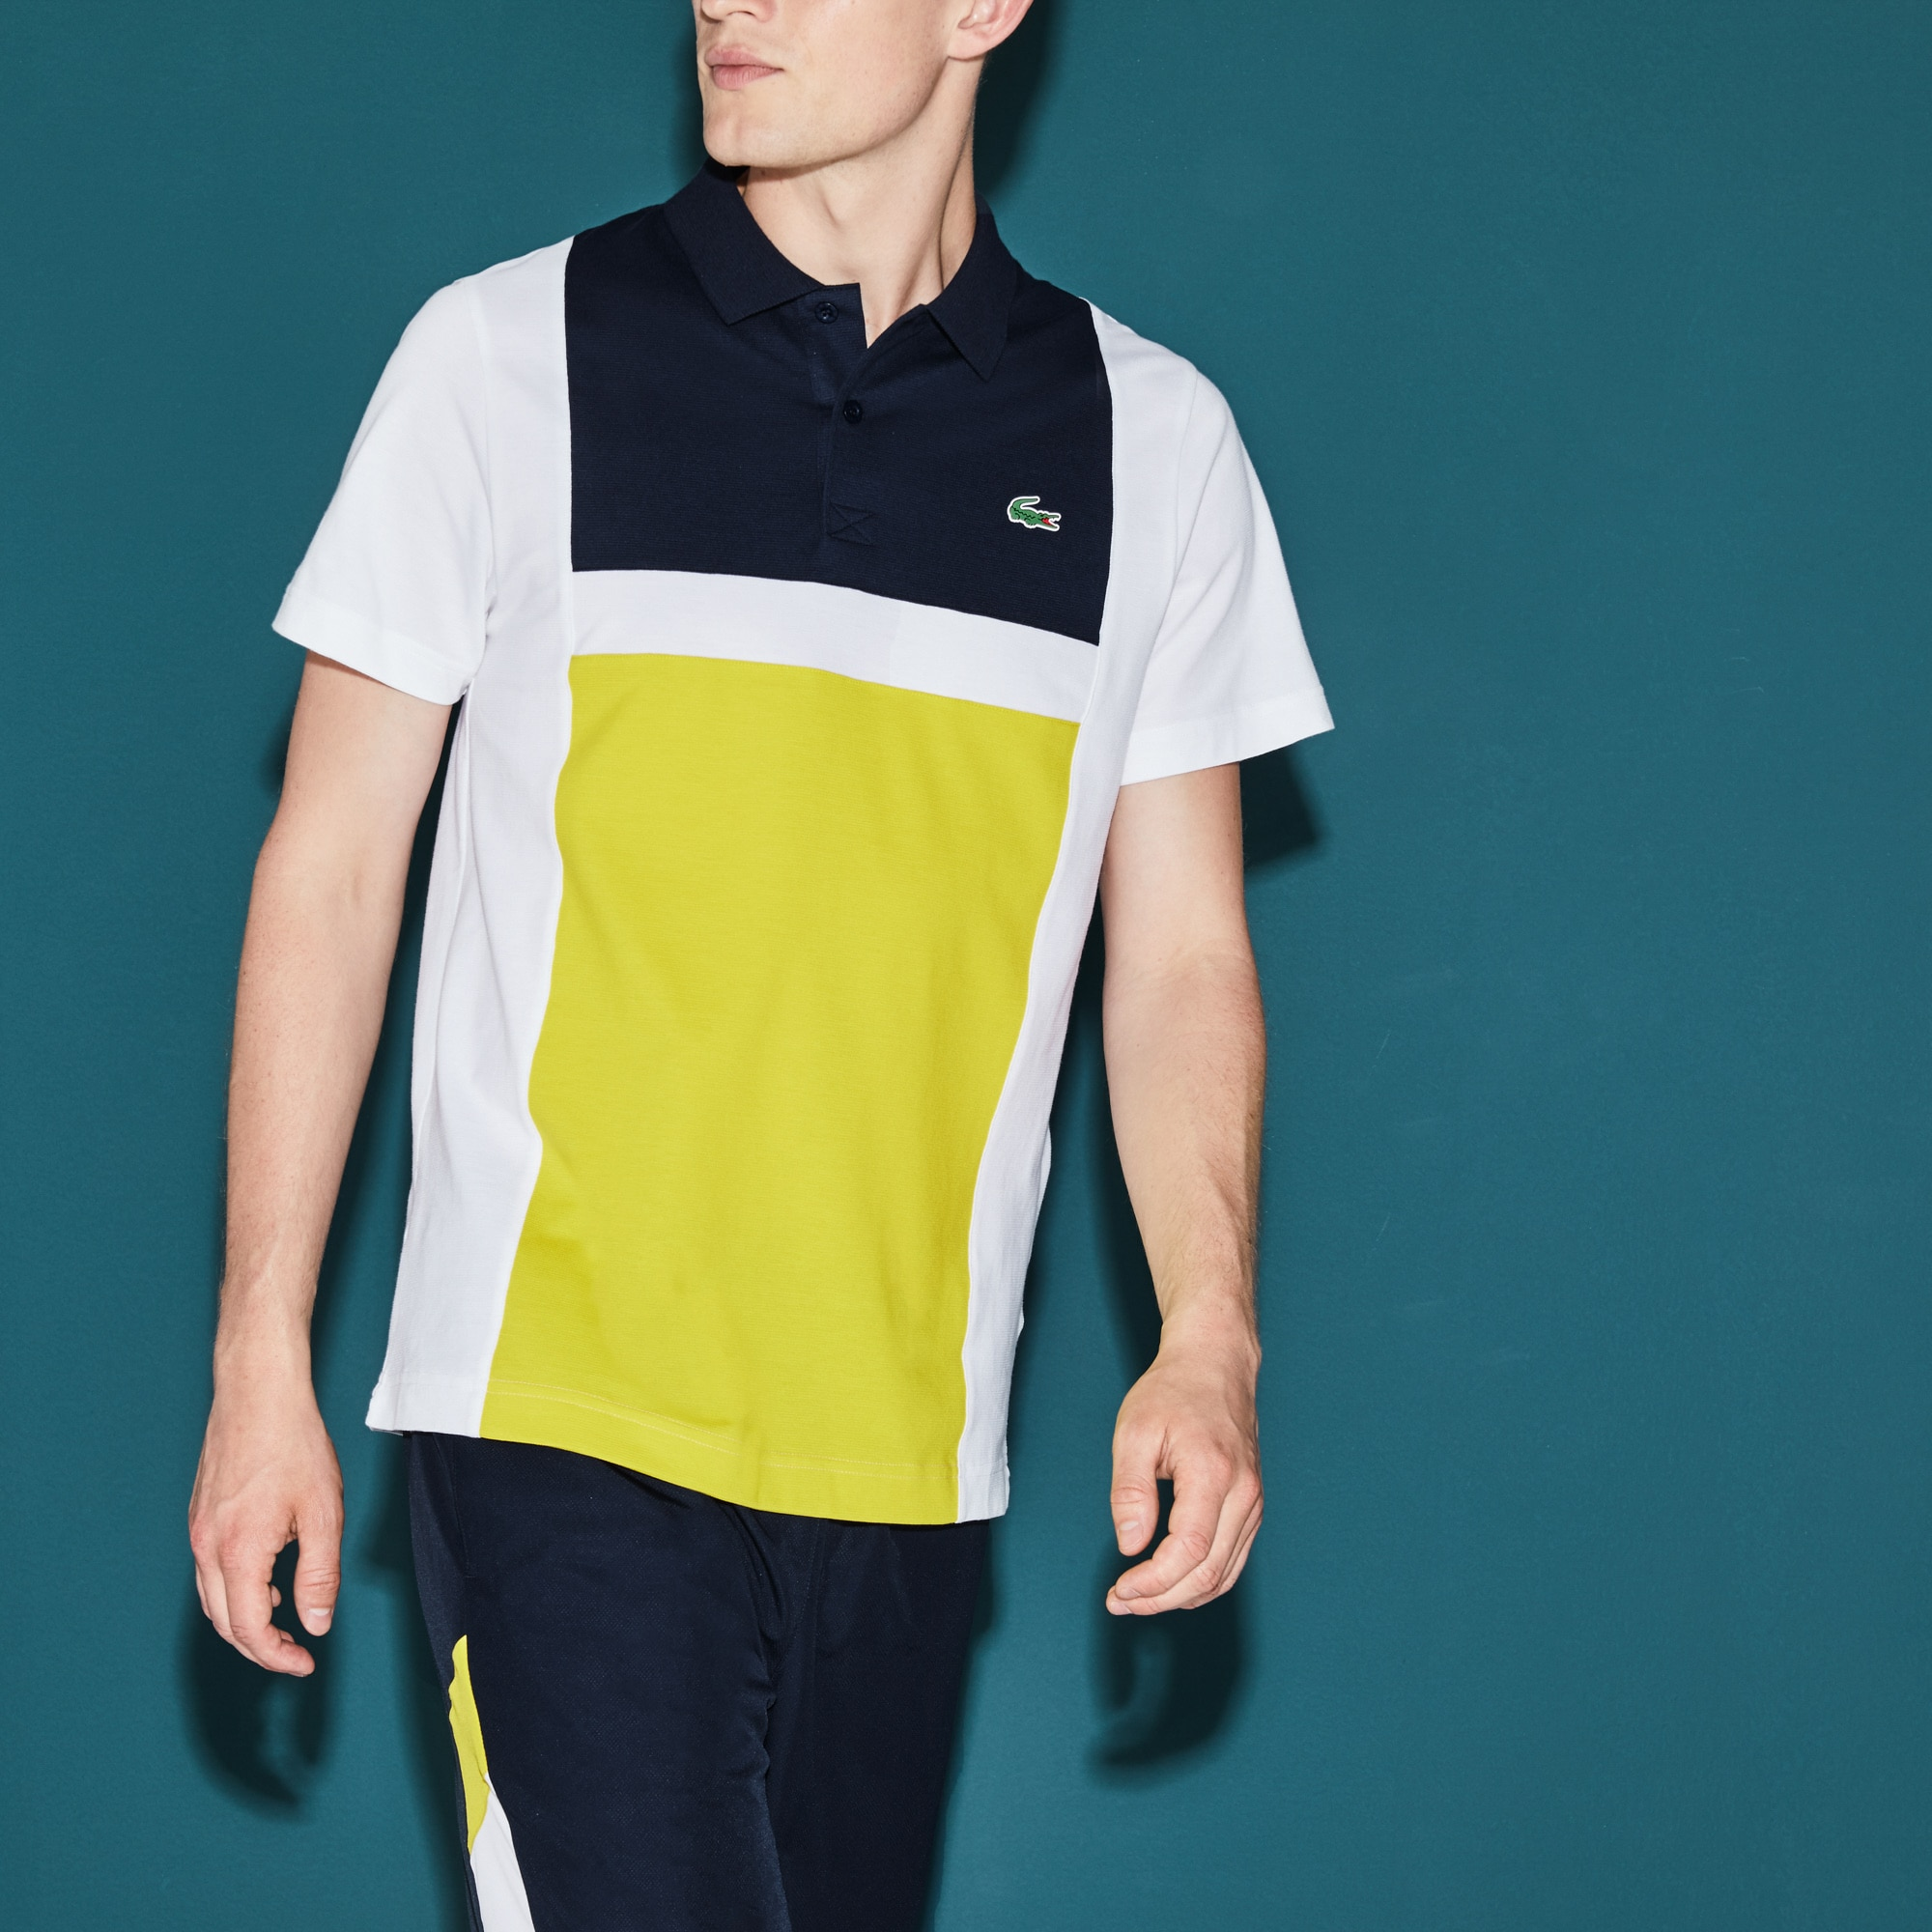 Men's Lacoste SPORT Tennis Colorblock Ultra-Light Cotton Polo Shirt